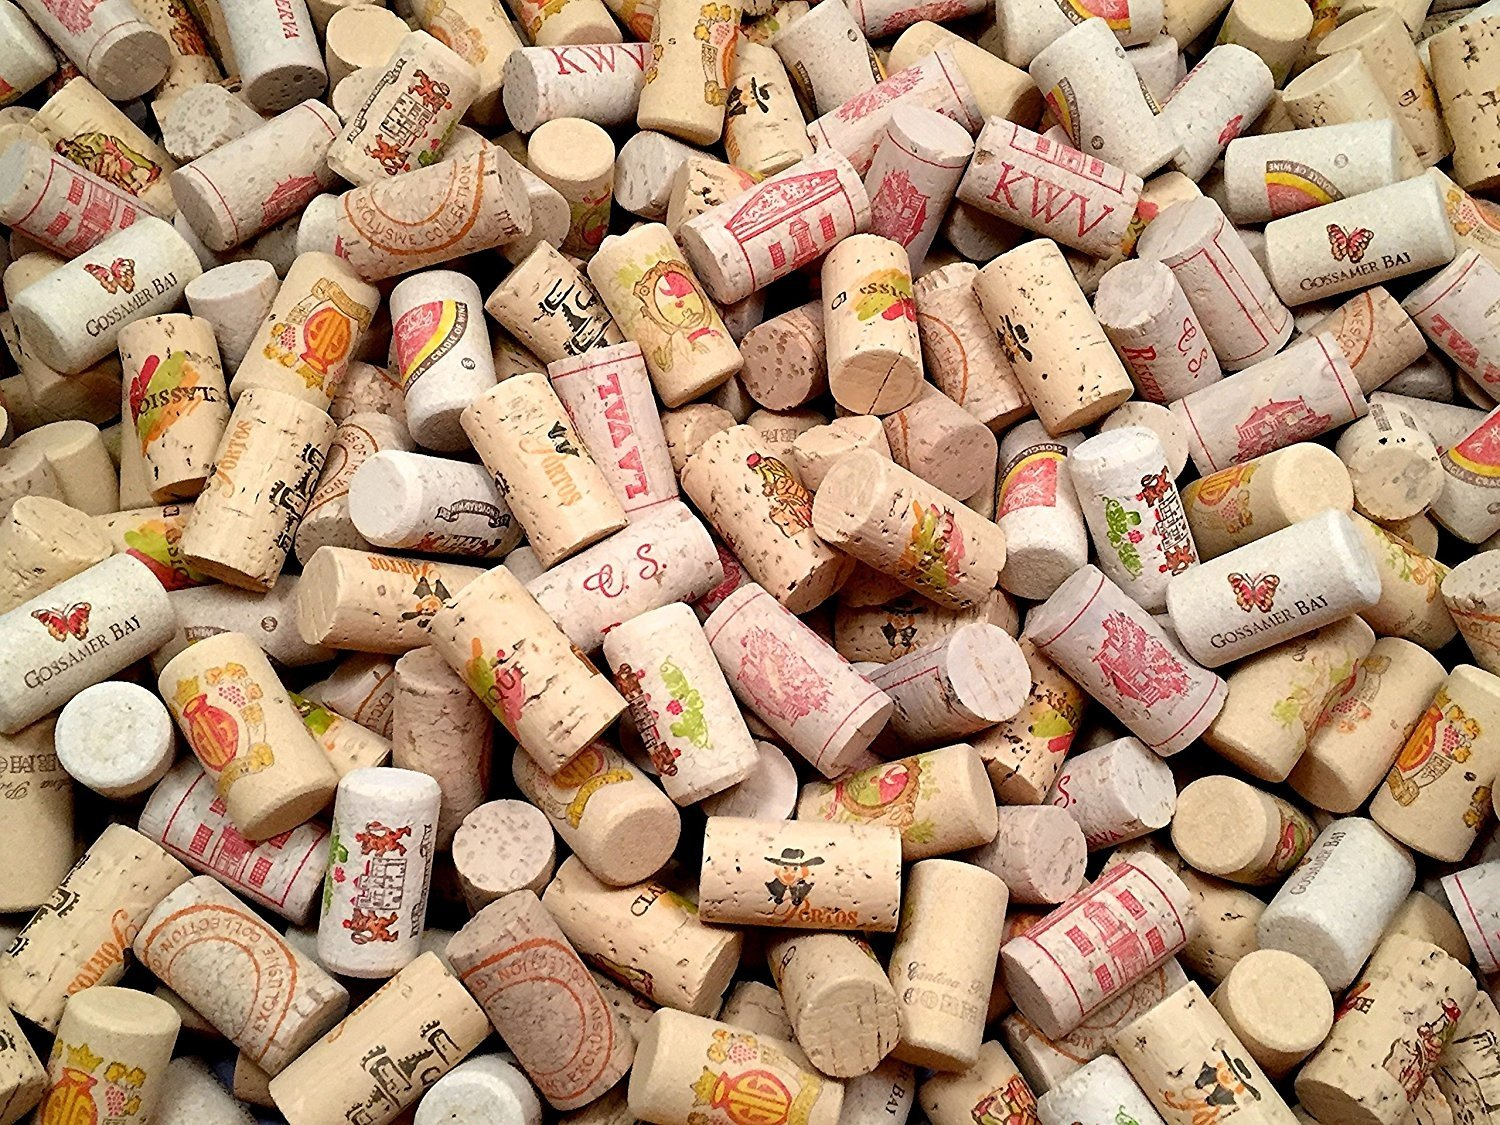 COLOR Wine Corks | Brand New, Authentic, All Natural | Printed, Winery-Marked, Craft Grade | Uncirculated, Uniform & Clean | Excellent for Crafting & Decor | Pack of 25/50/100 Premium Wine Cork (50) by Omni Trading Worldwide (Image #4)